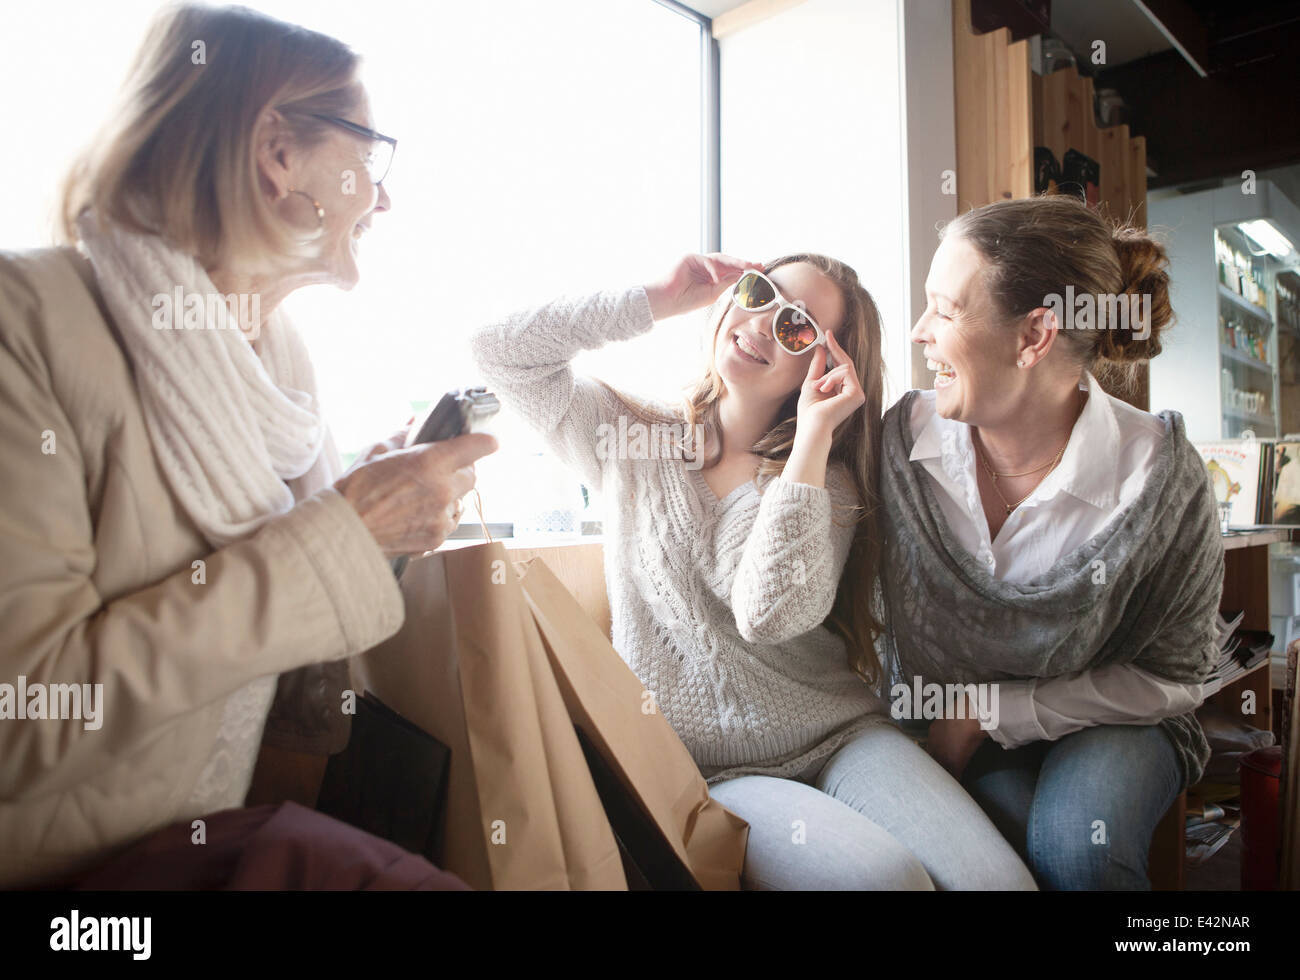 Three generation females trying on sunglasses in shop - Stock Image